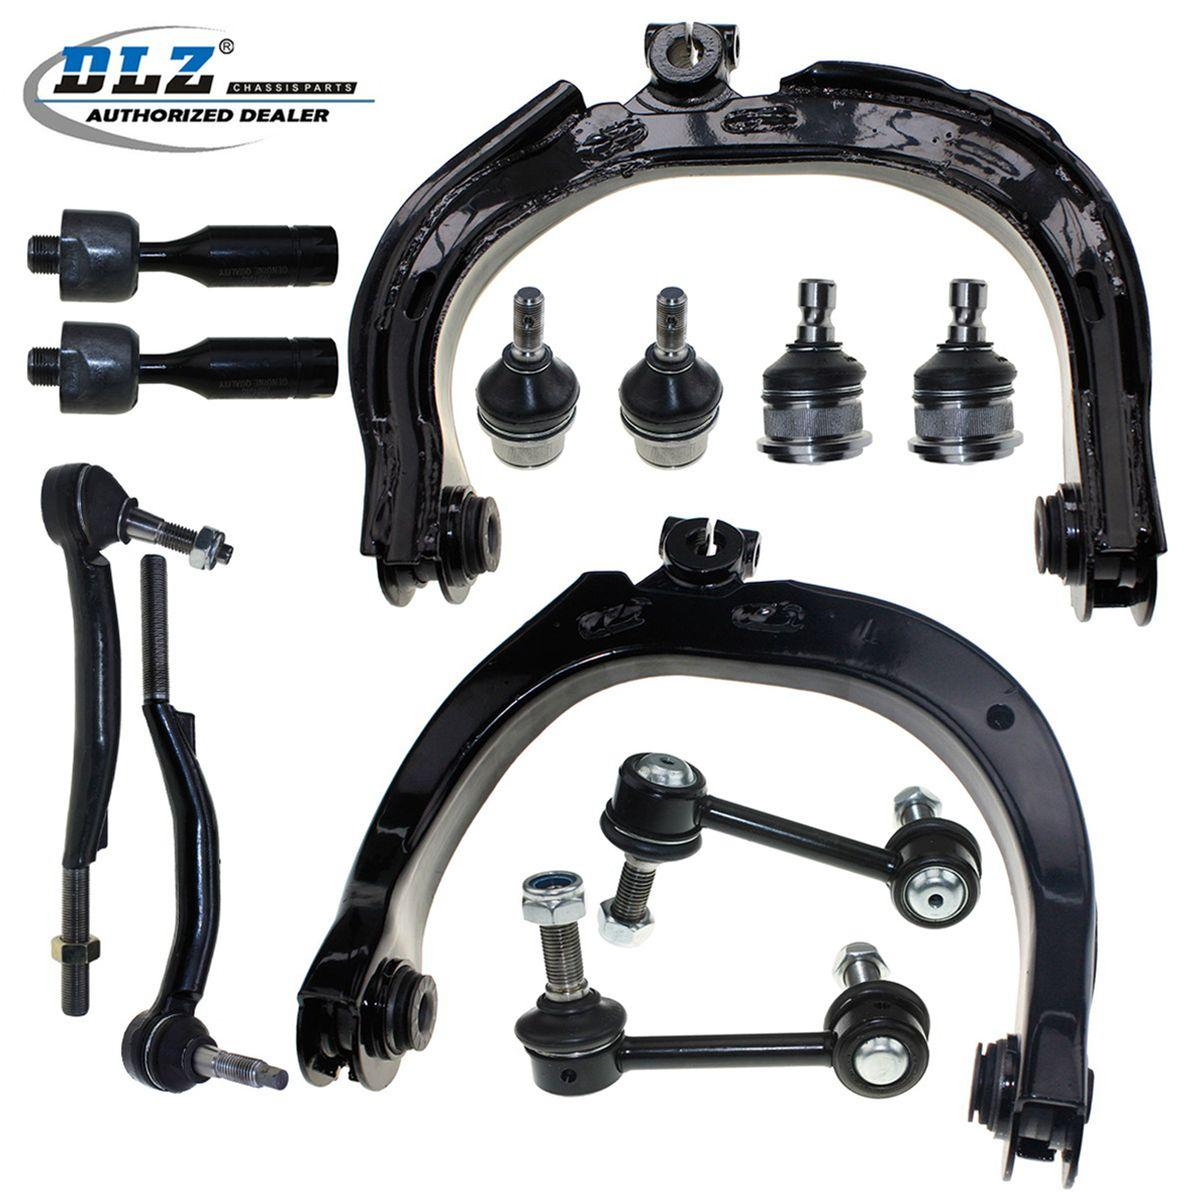 2005 Buick Rainier Rear Air Suspension: Brand New 10pc Front Suspension For Chevy GMC Ascender